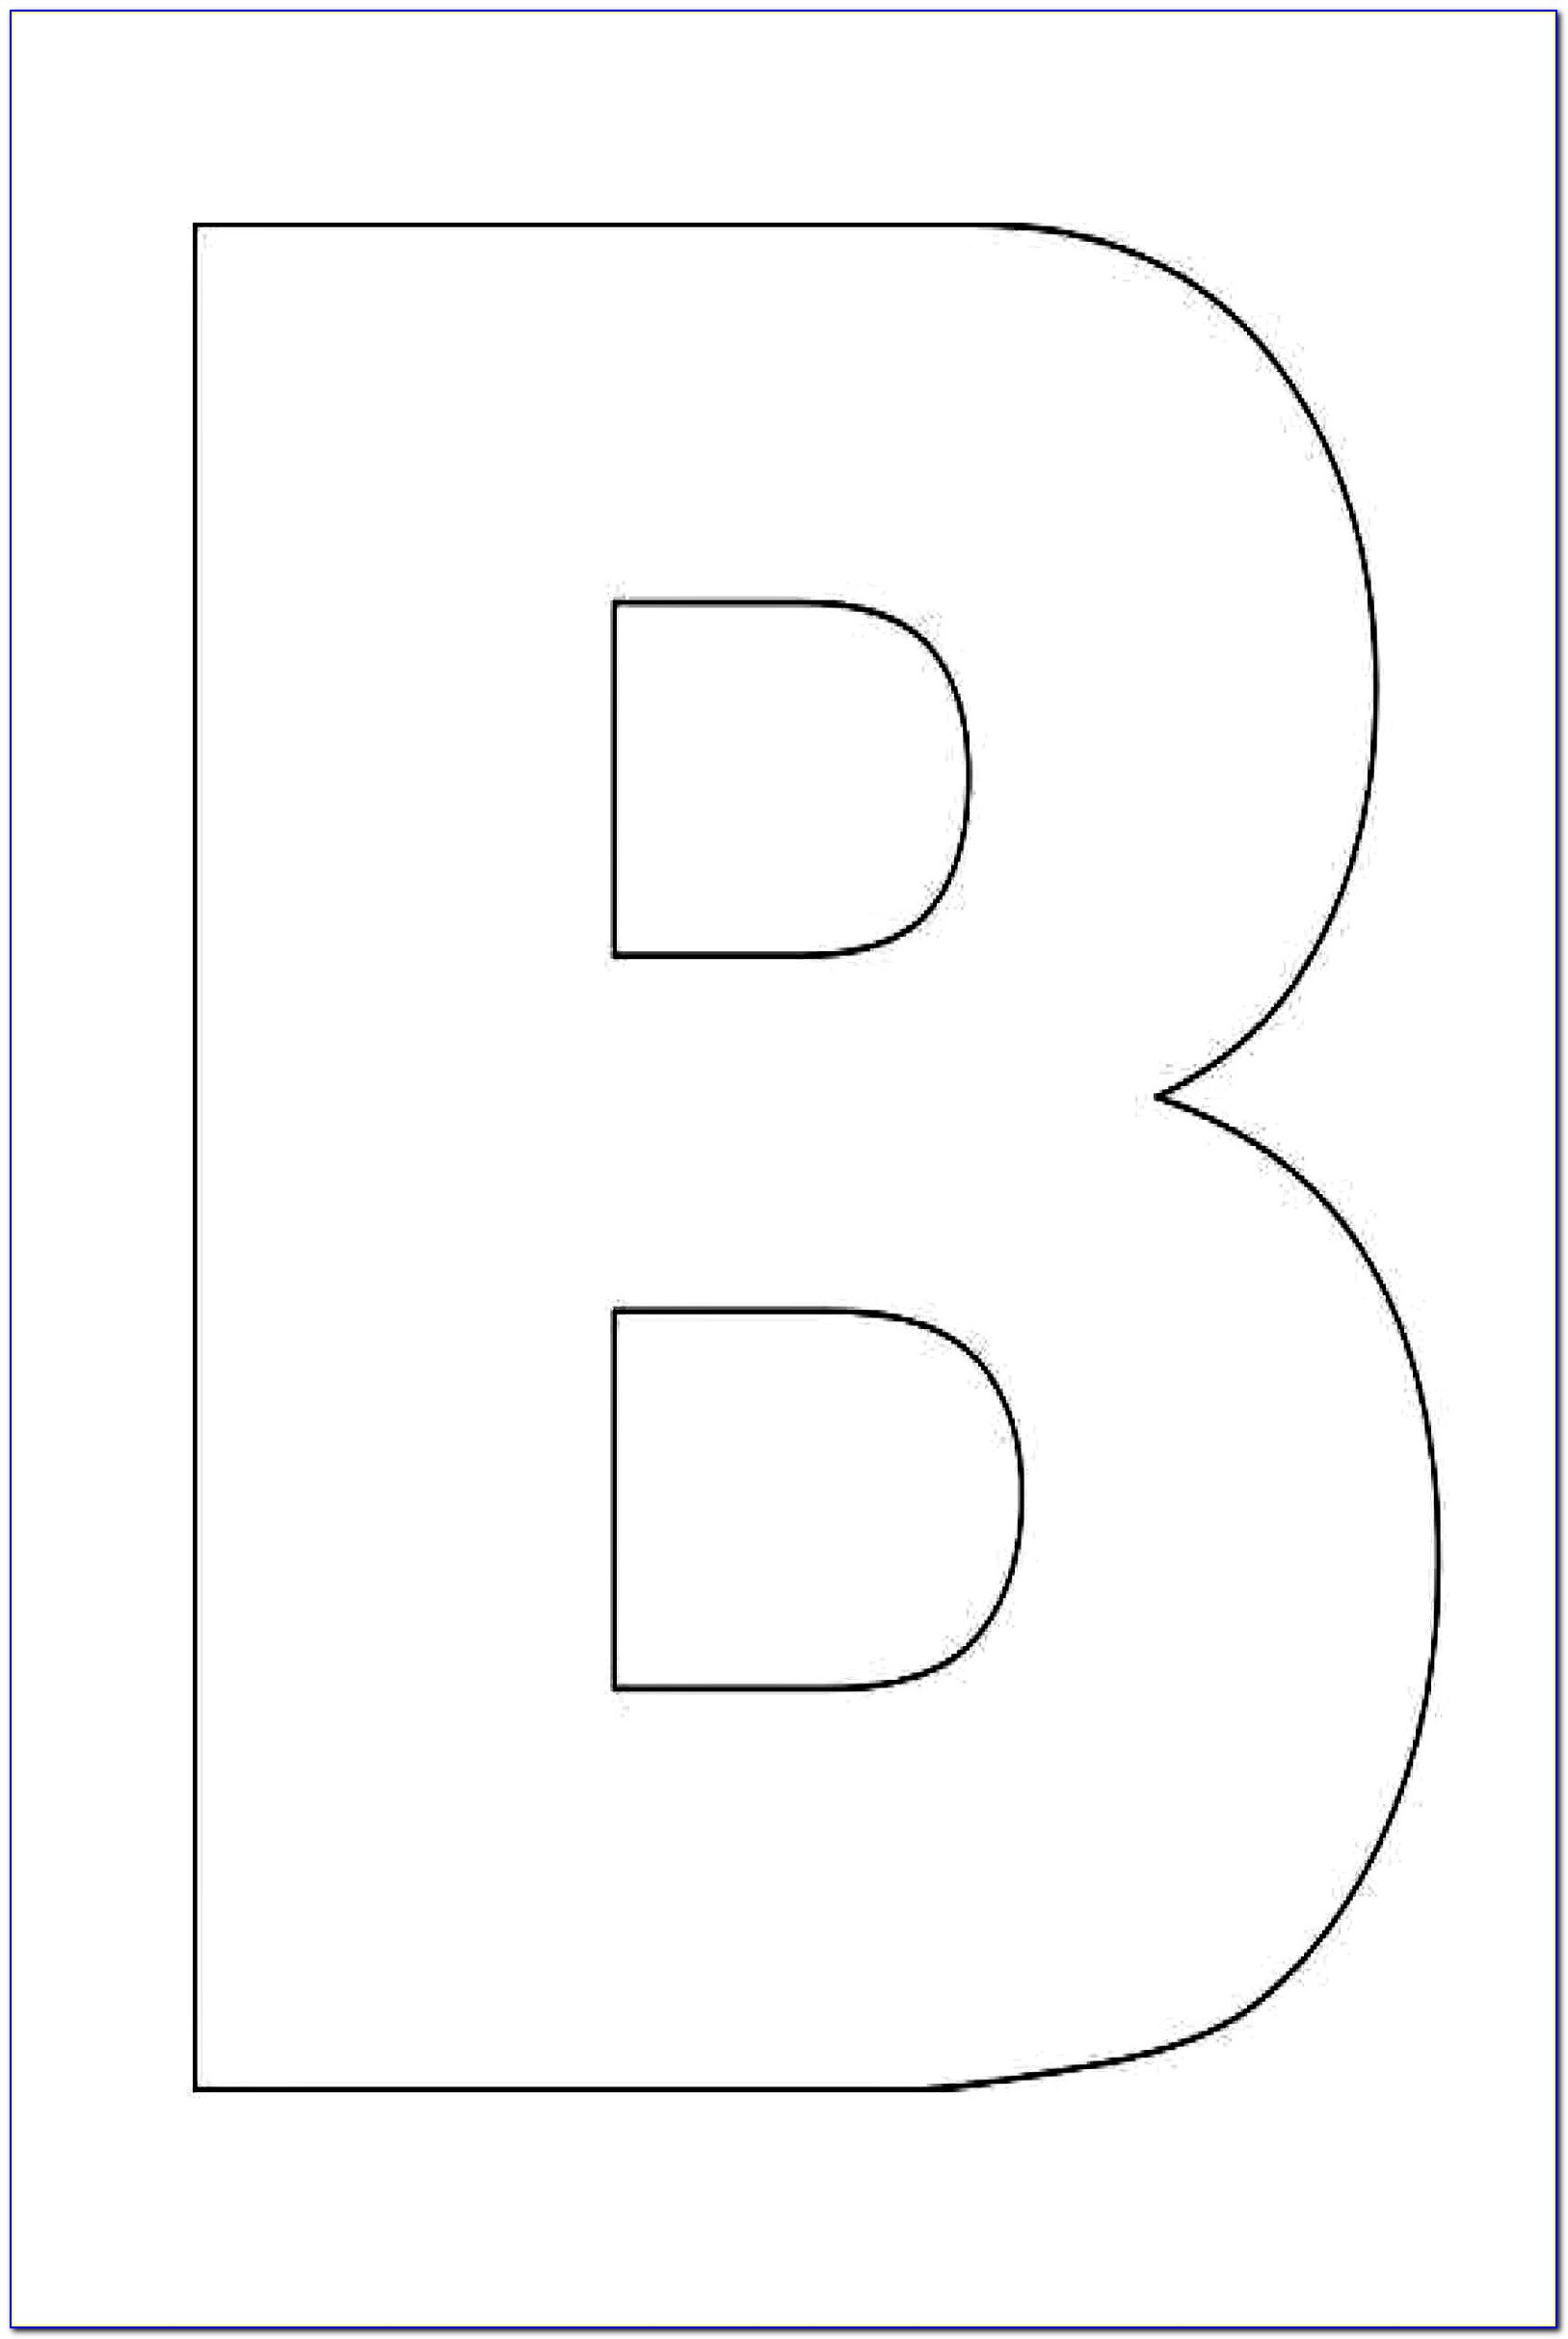 Free Printable Alphabet Stencils Templates Alphabet Letter B Template For Kids